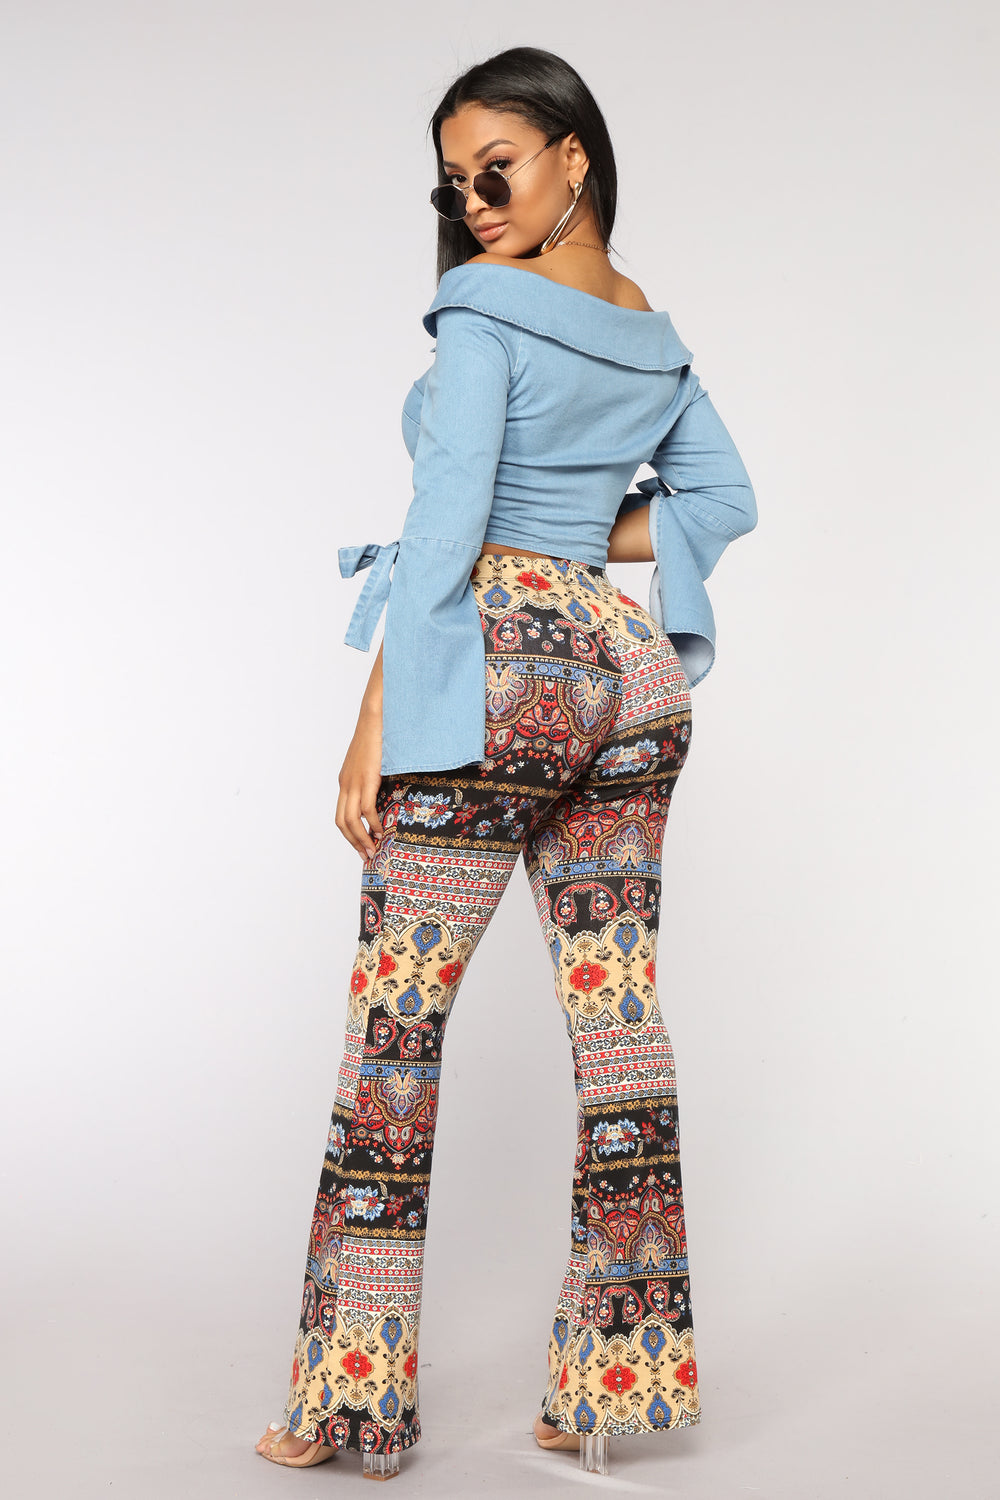 Every Time Print Flare Pants - Multi